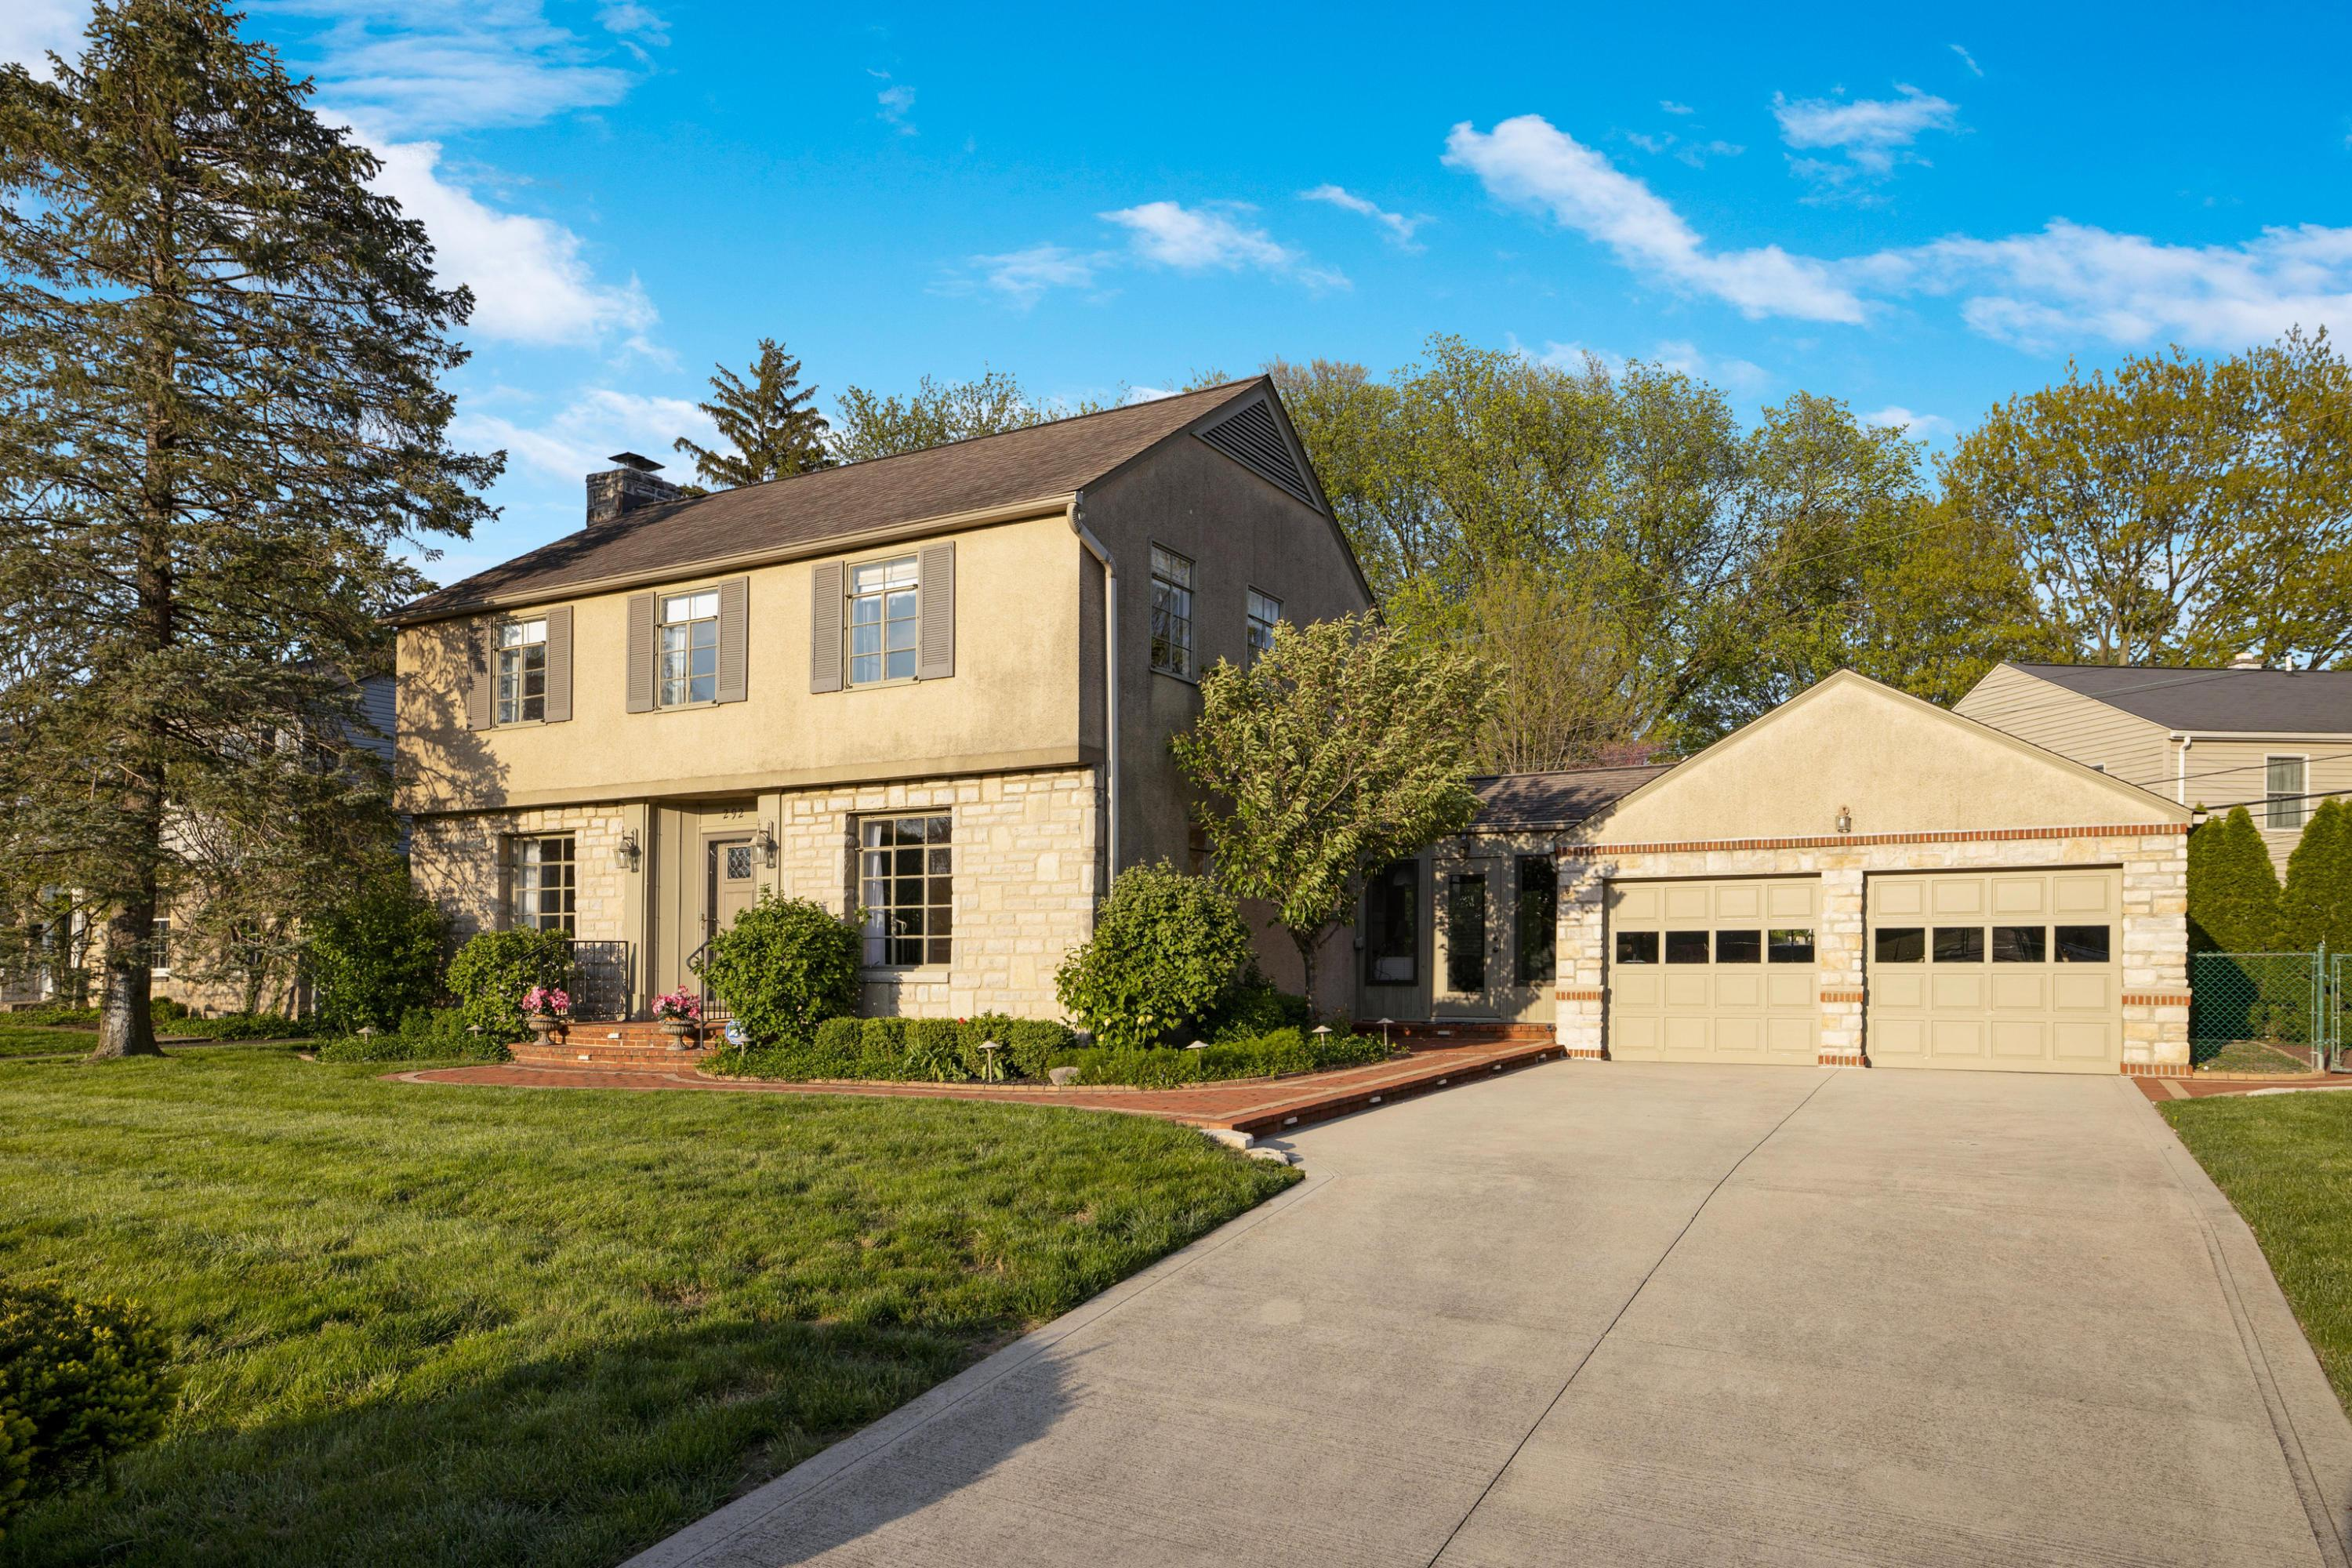 Photo of 292 Stanwood Road, Bexley, OH 43209